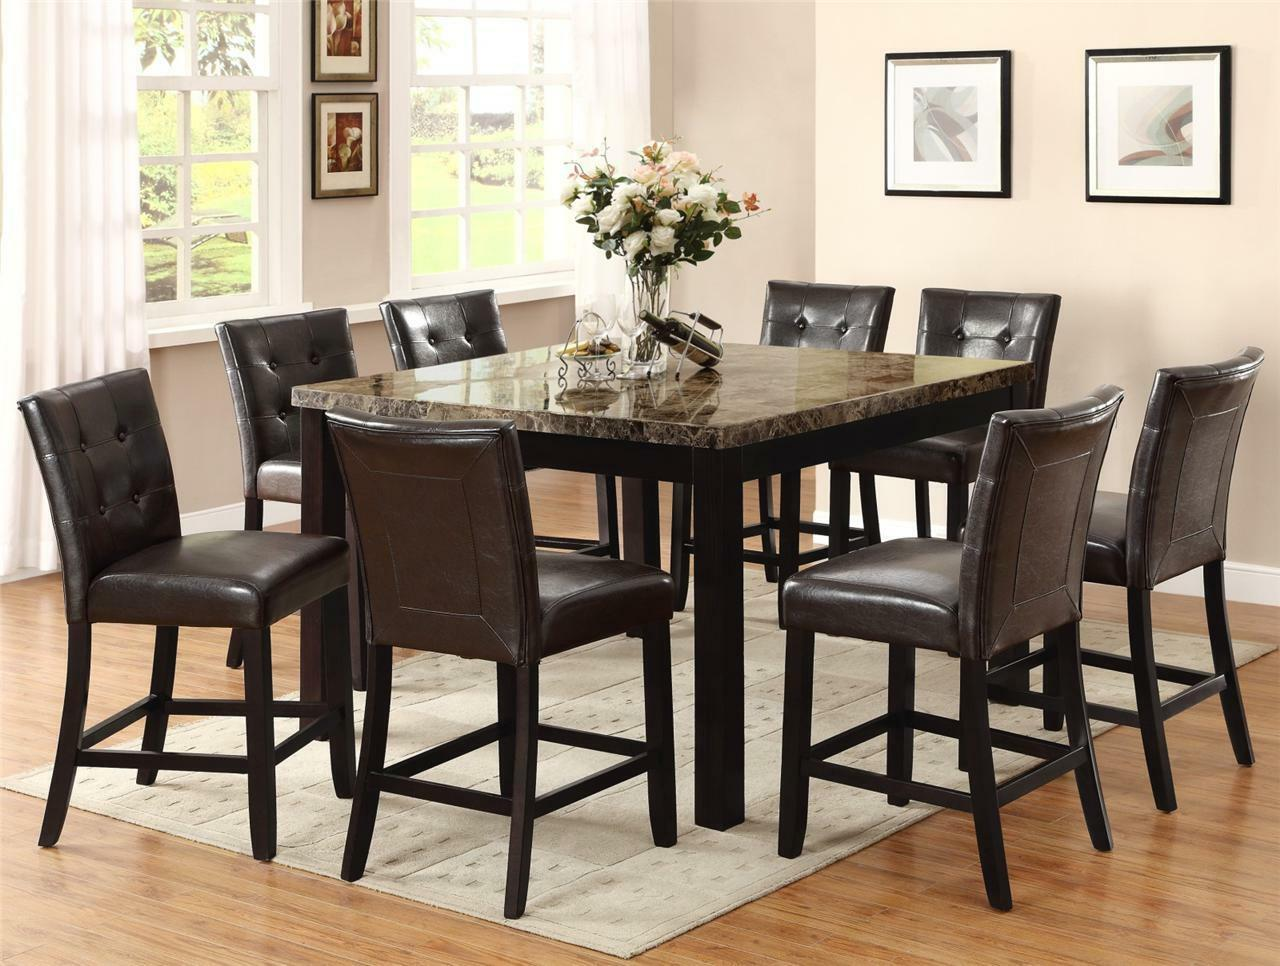 Height Pub Table Sets Counter Height Dining Room Table Chairs